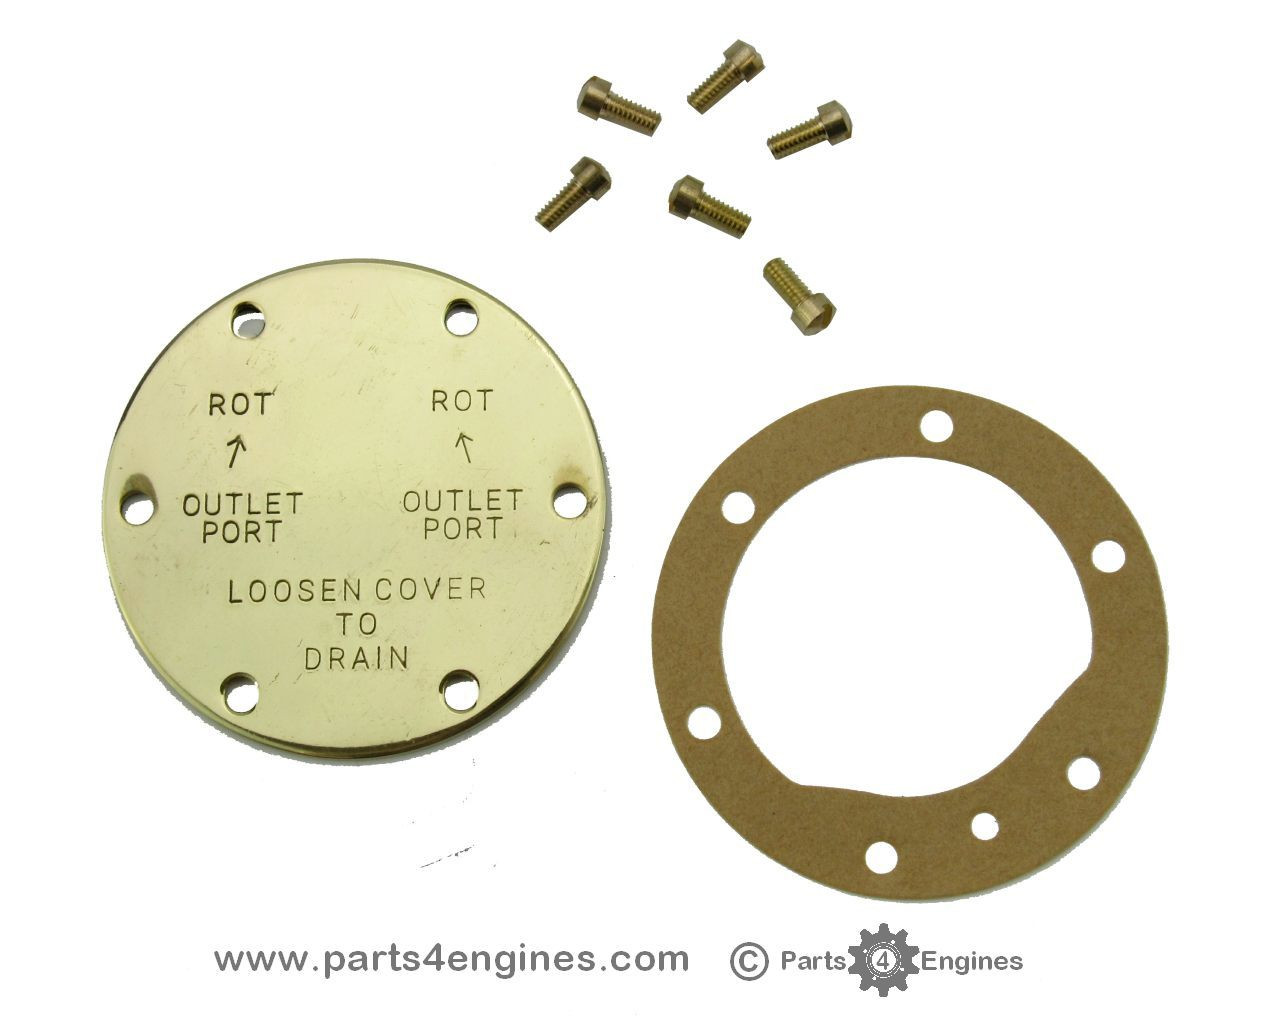 Volvo Penta MD22 raw water pump end cover kit - Parts4engines.com